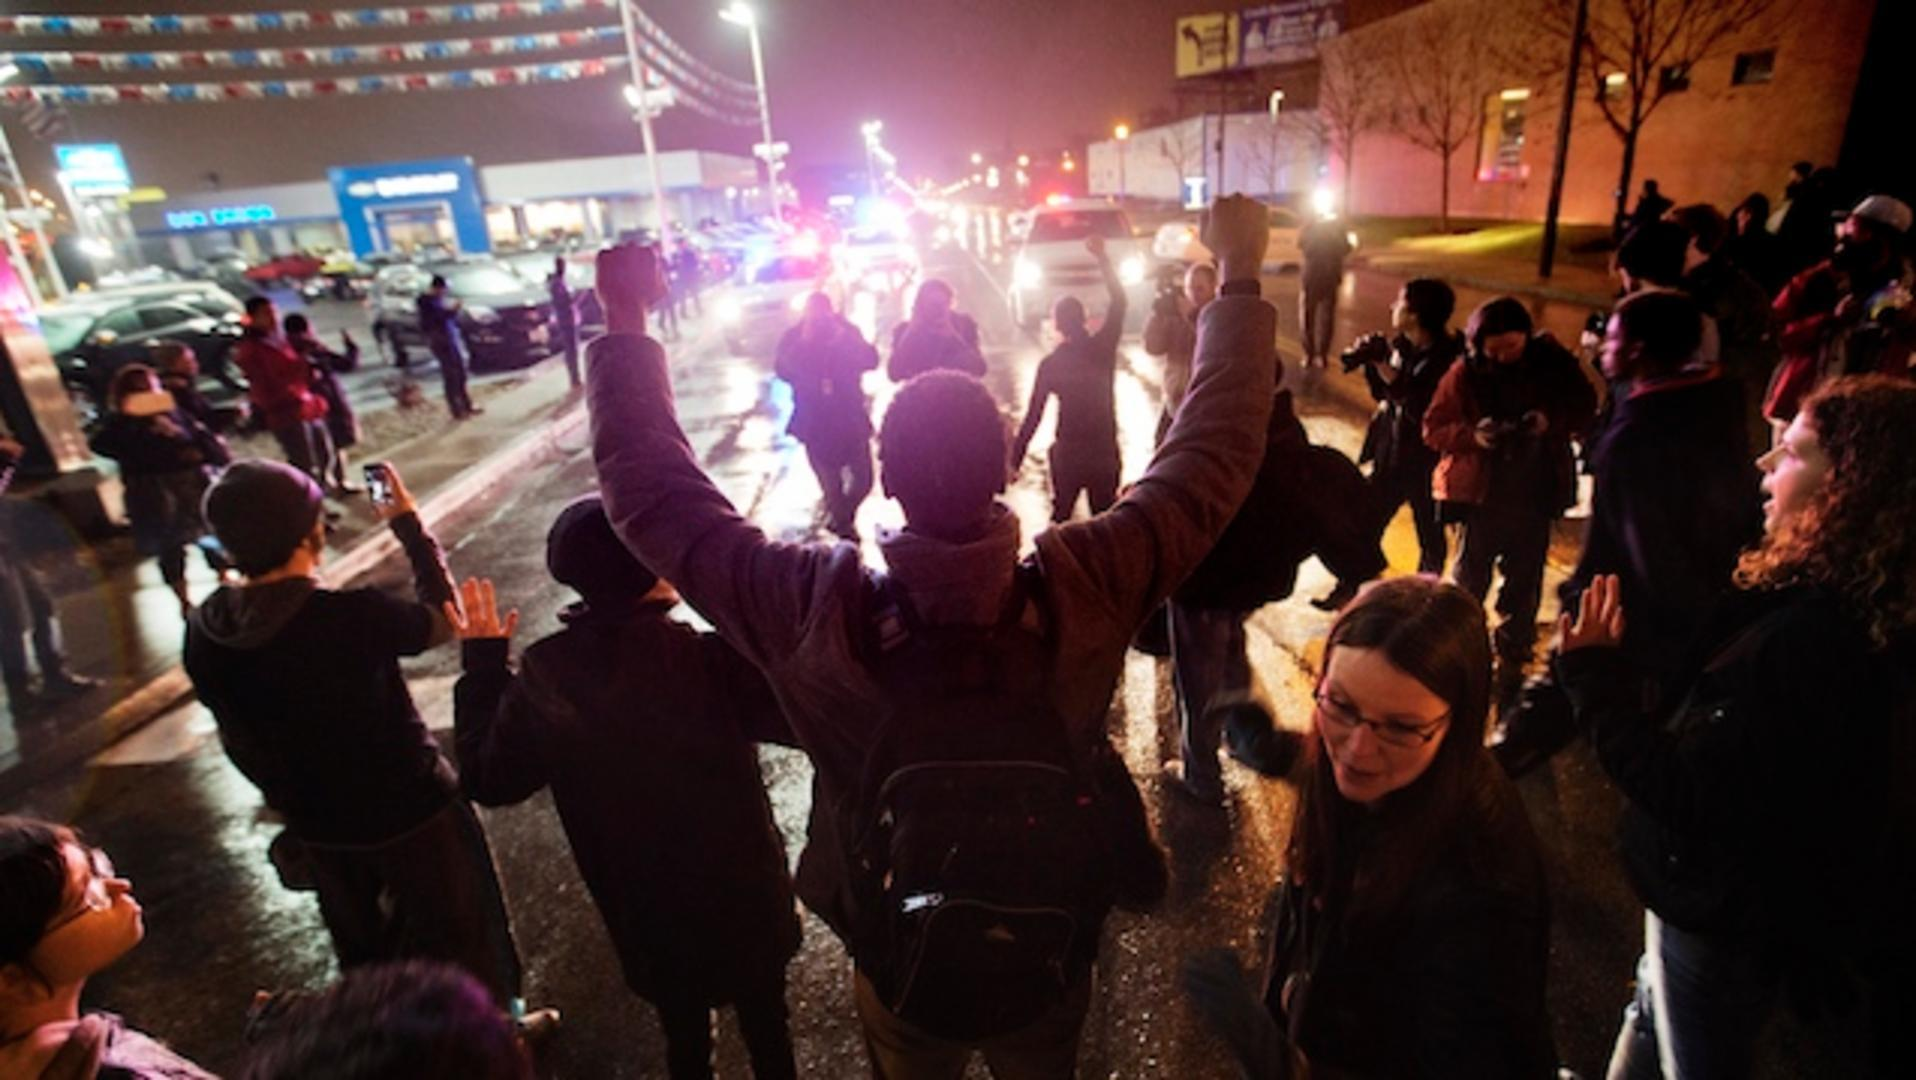 Ferguson prosecutor: Some witnesses lied, including woman who didn't see shooting